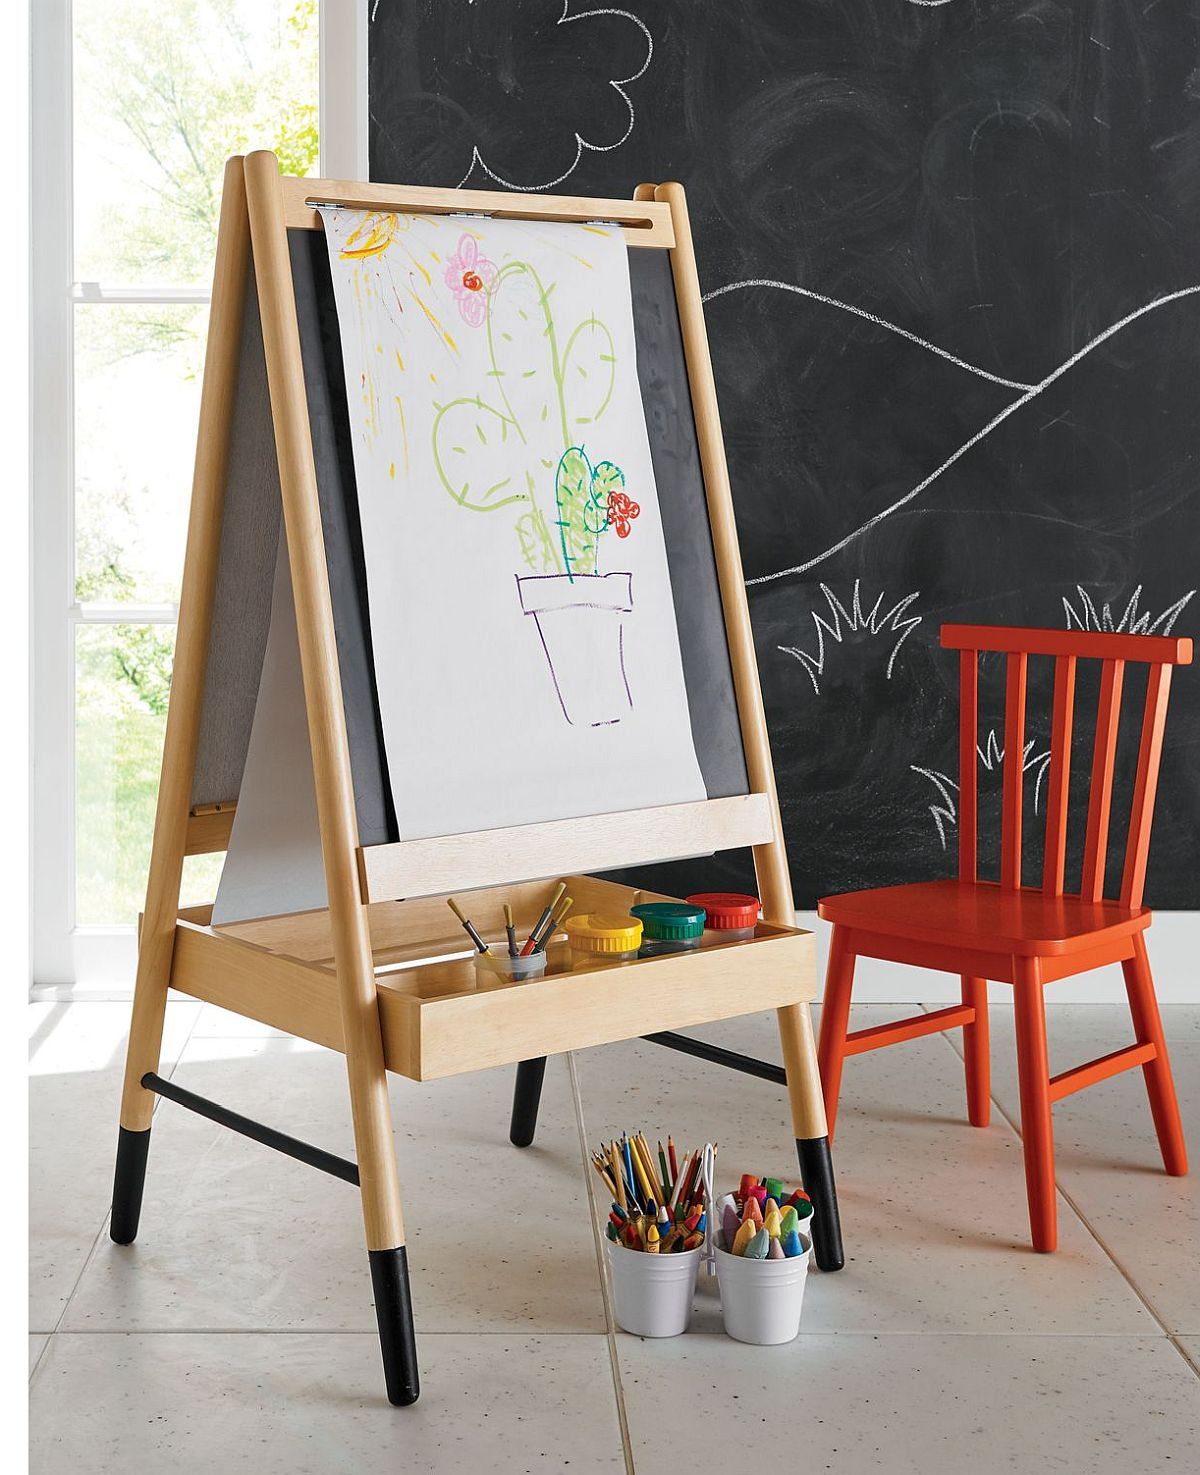 Wooden-Art-Easel-from-Crate-Kids-brings-out-the-creative-side-of-your-little-one-84178